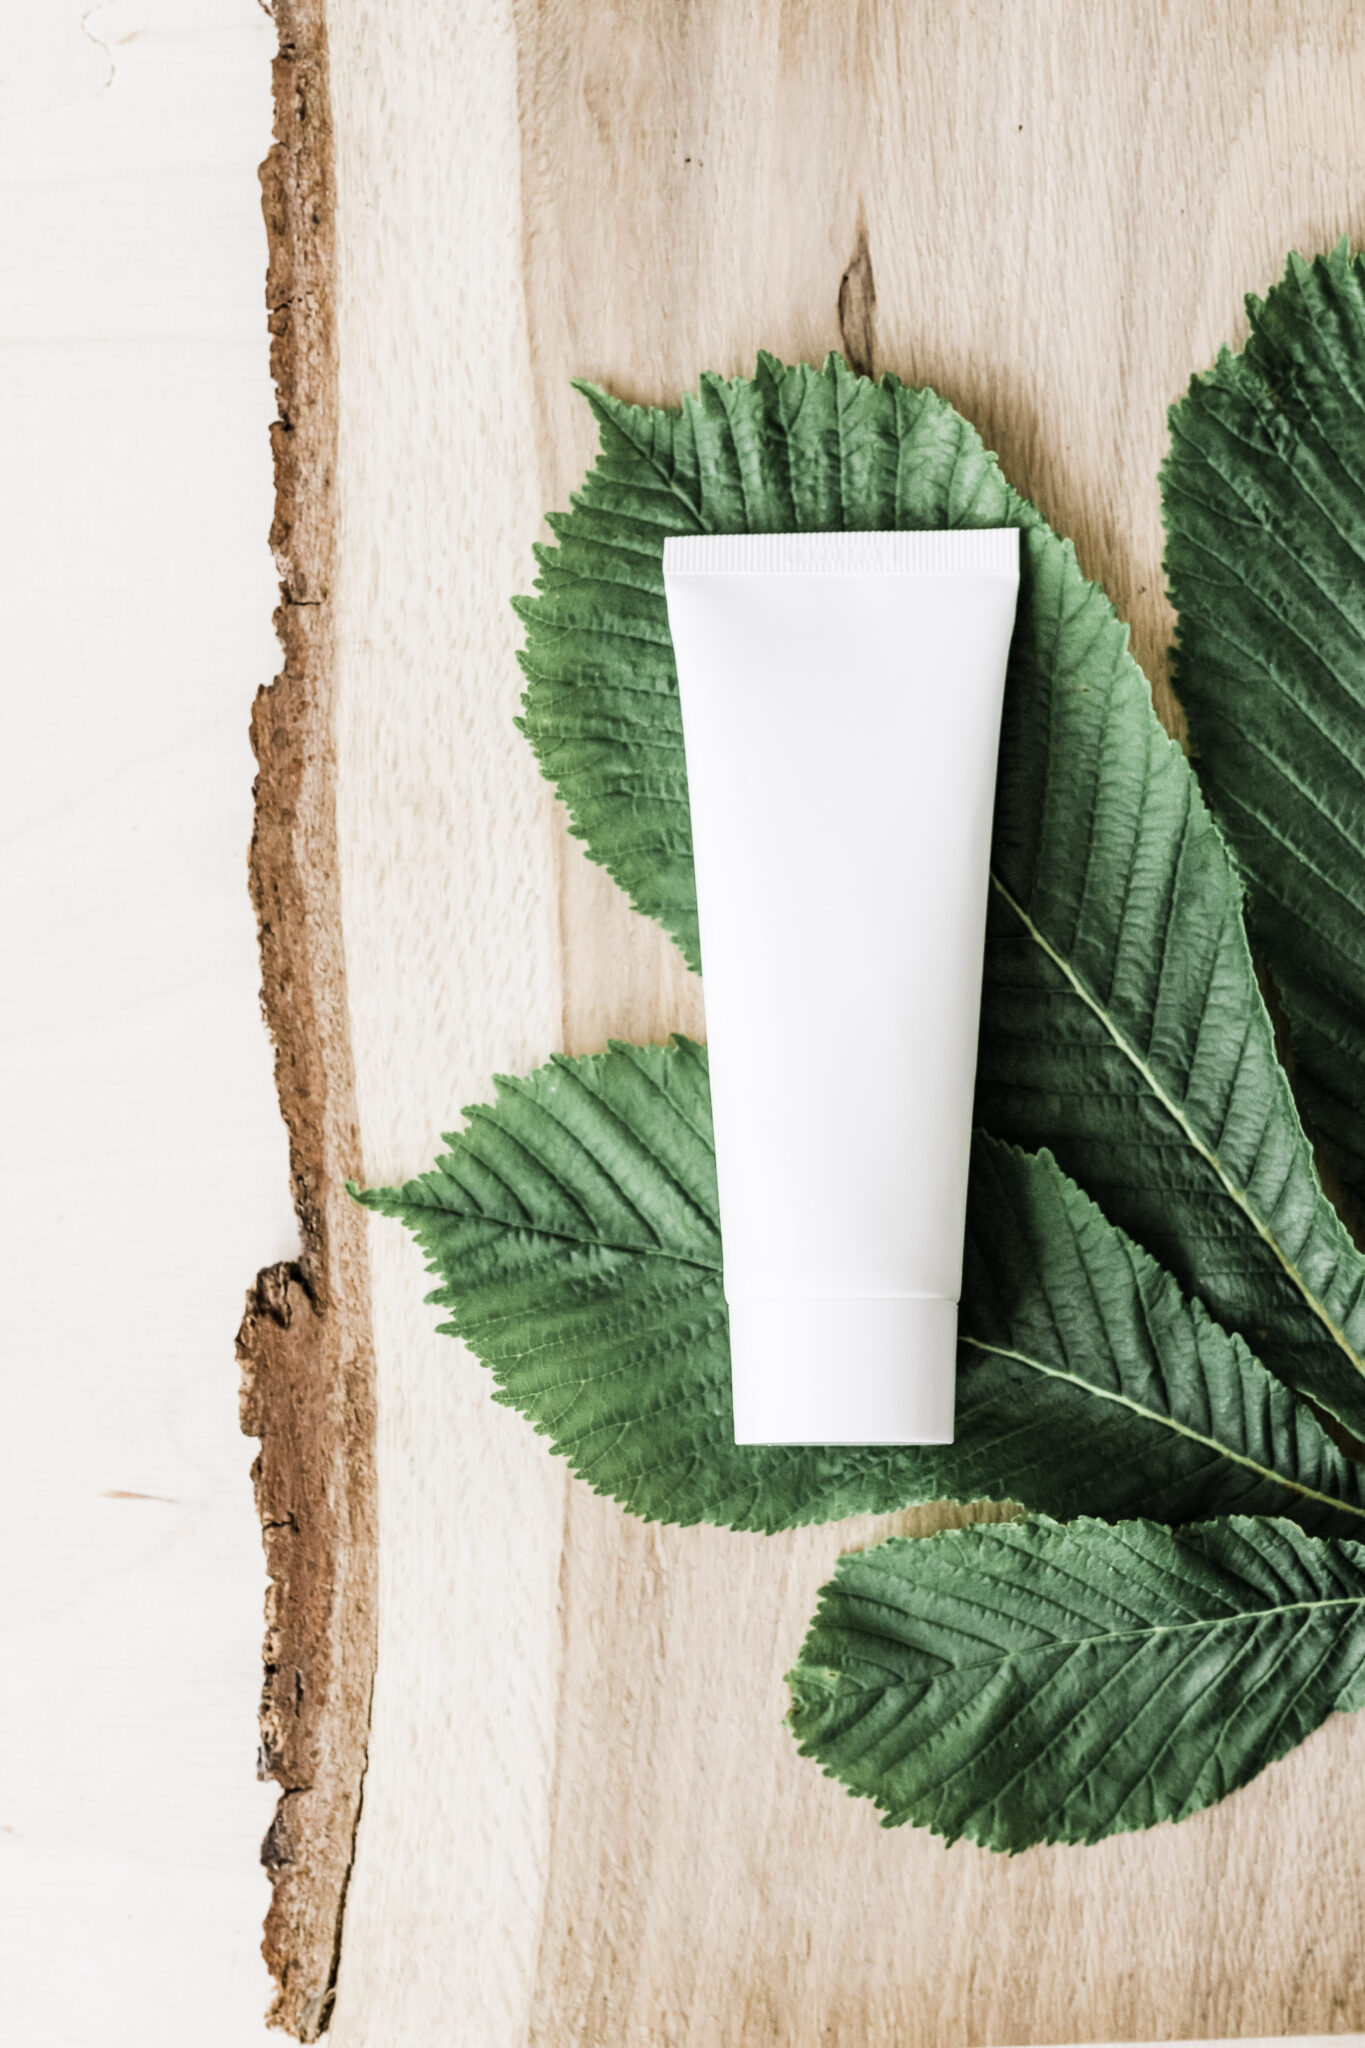 A white shampoo bottle lies on green leaves on a wooden live edge board.